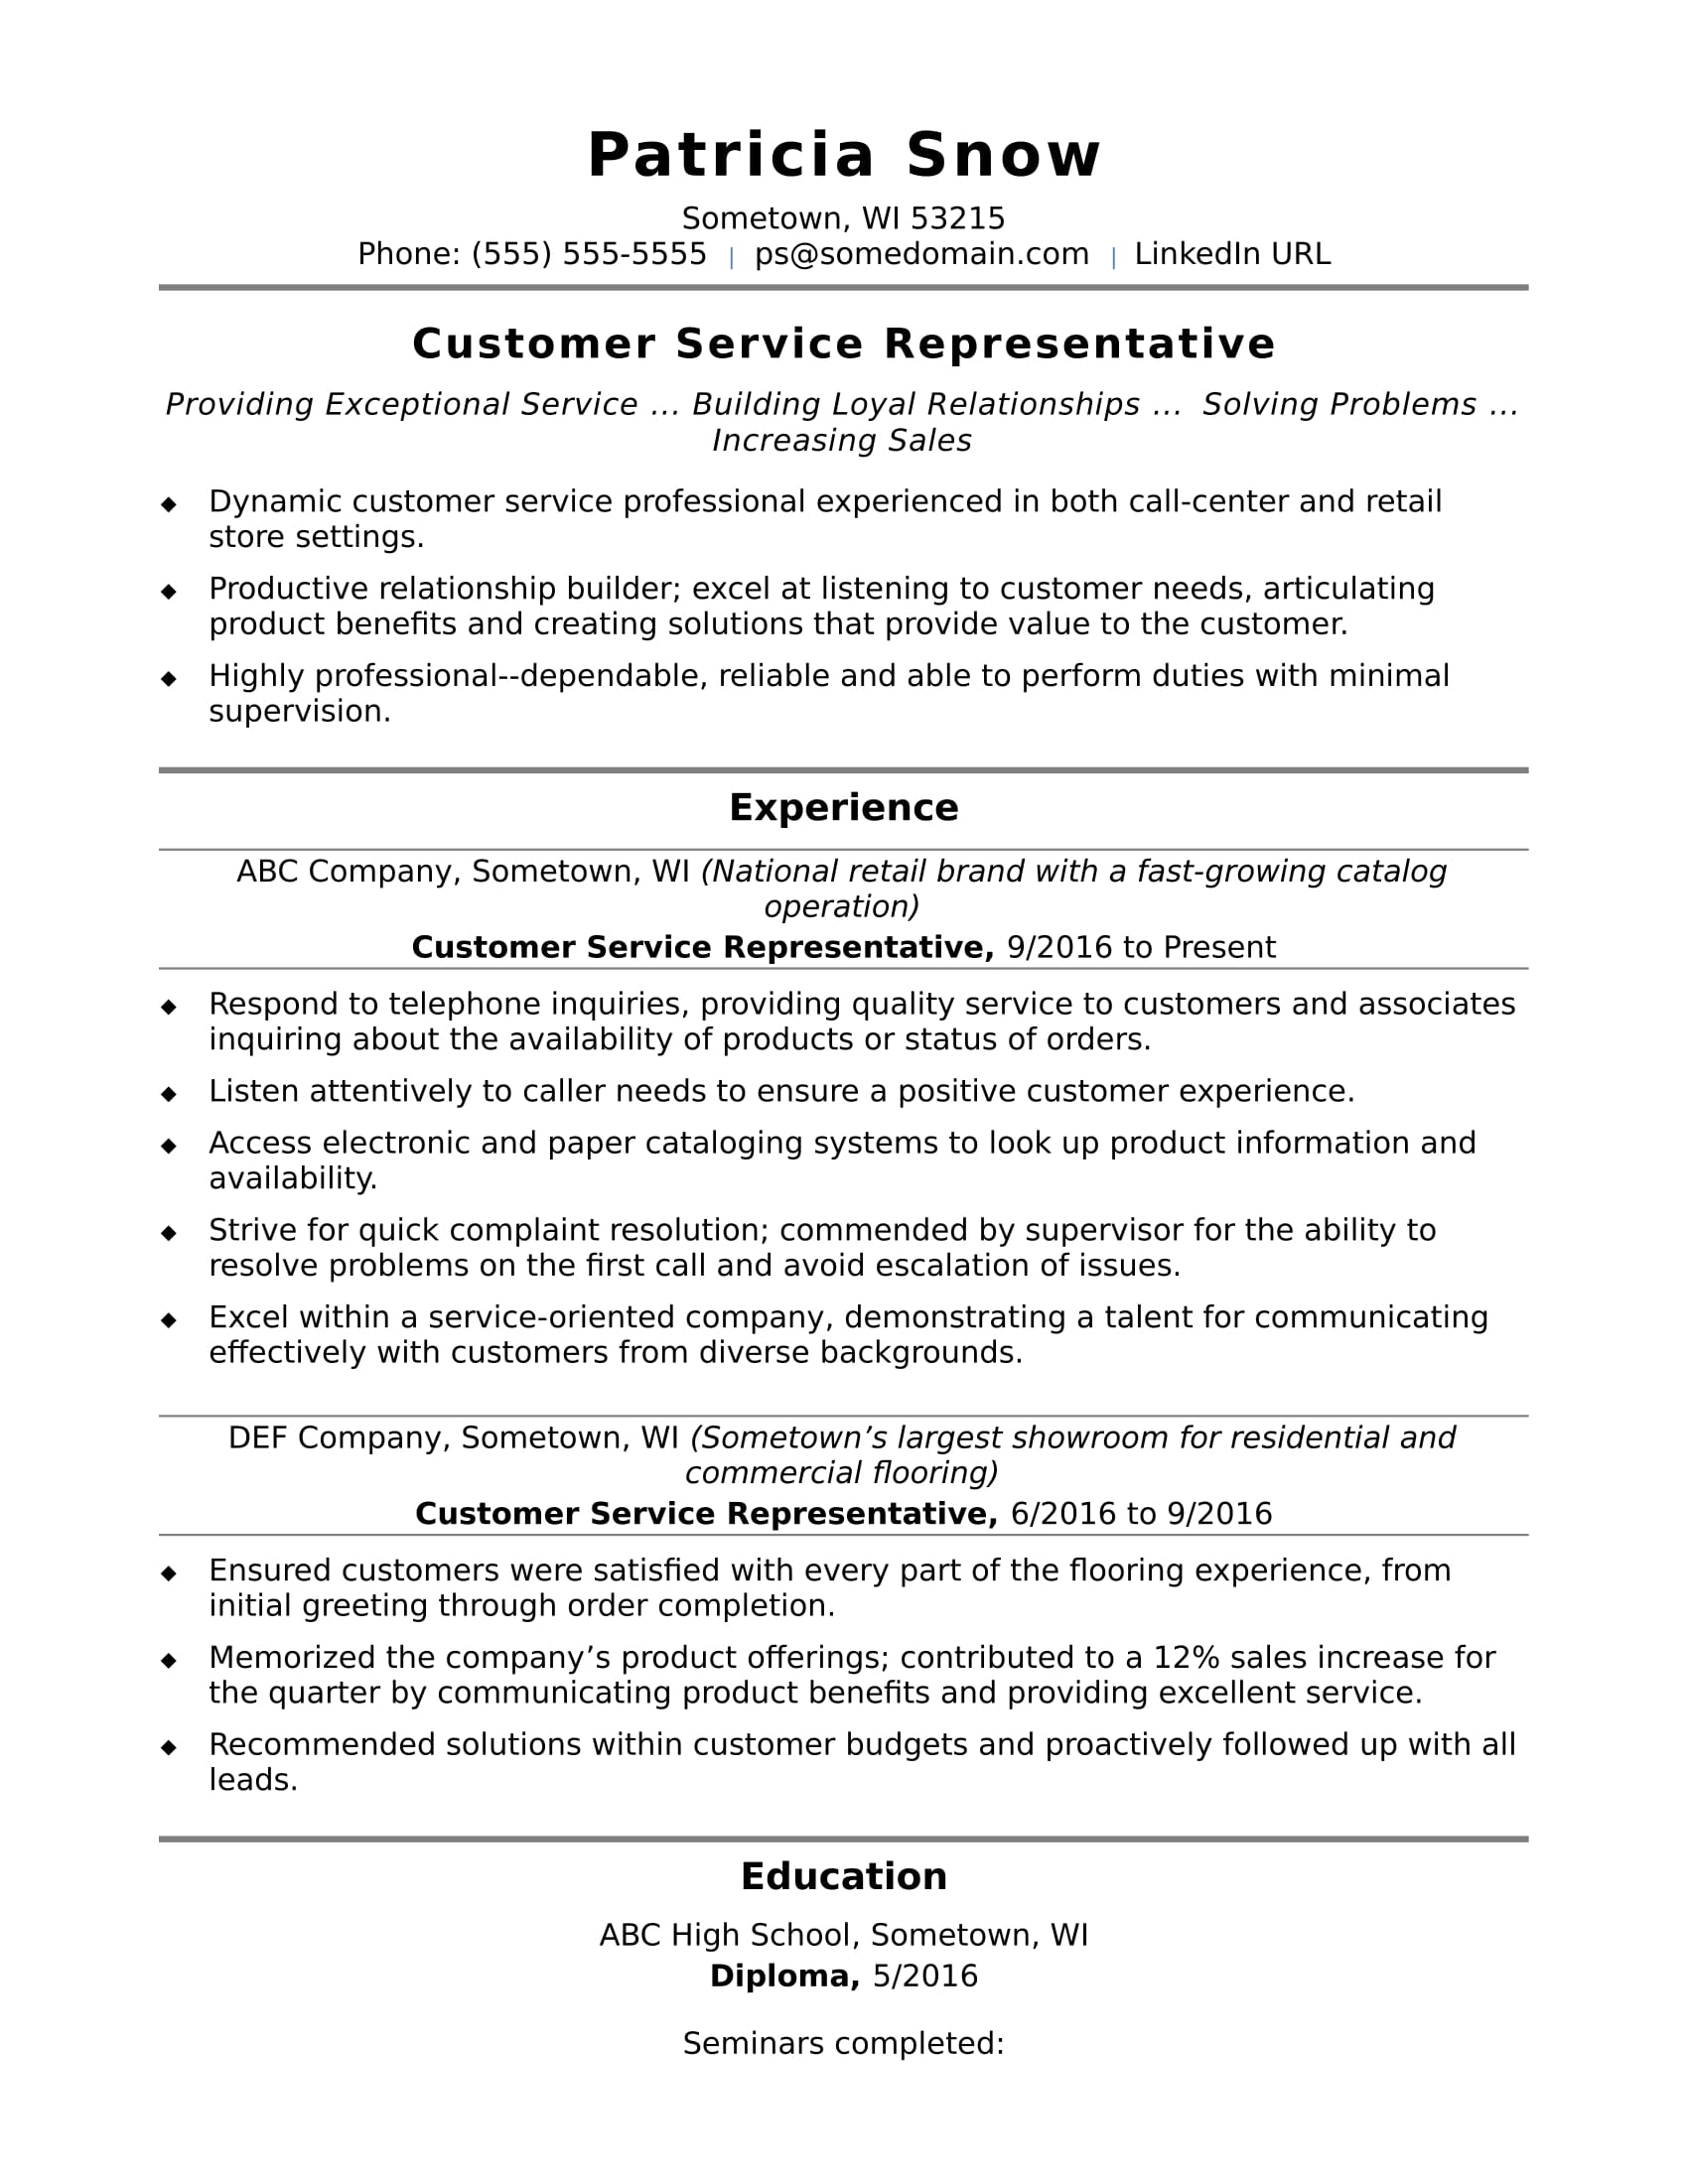 Samples Of Resumes For Customer Service Customer Service Representative Resume Sample Monster